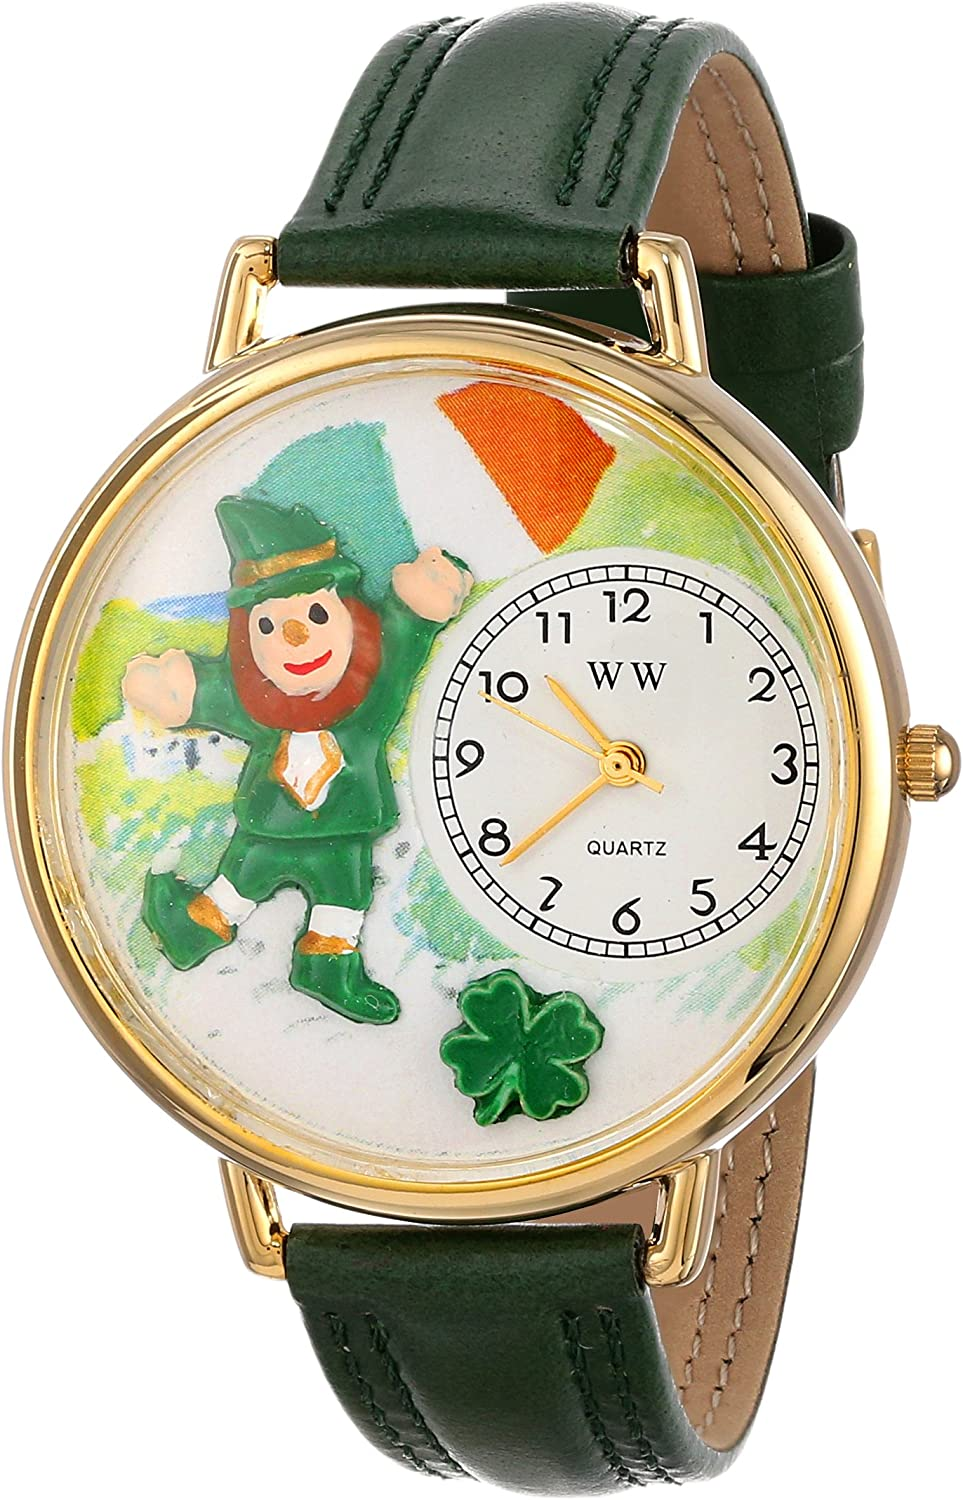 Whimsical Watches Unisex G1224001 St. Patrick s Day Irish Flag Green Leather Watch